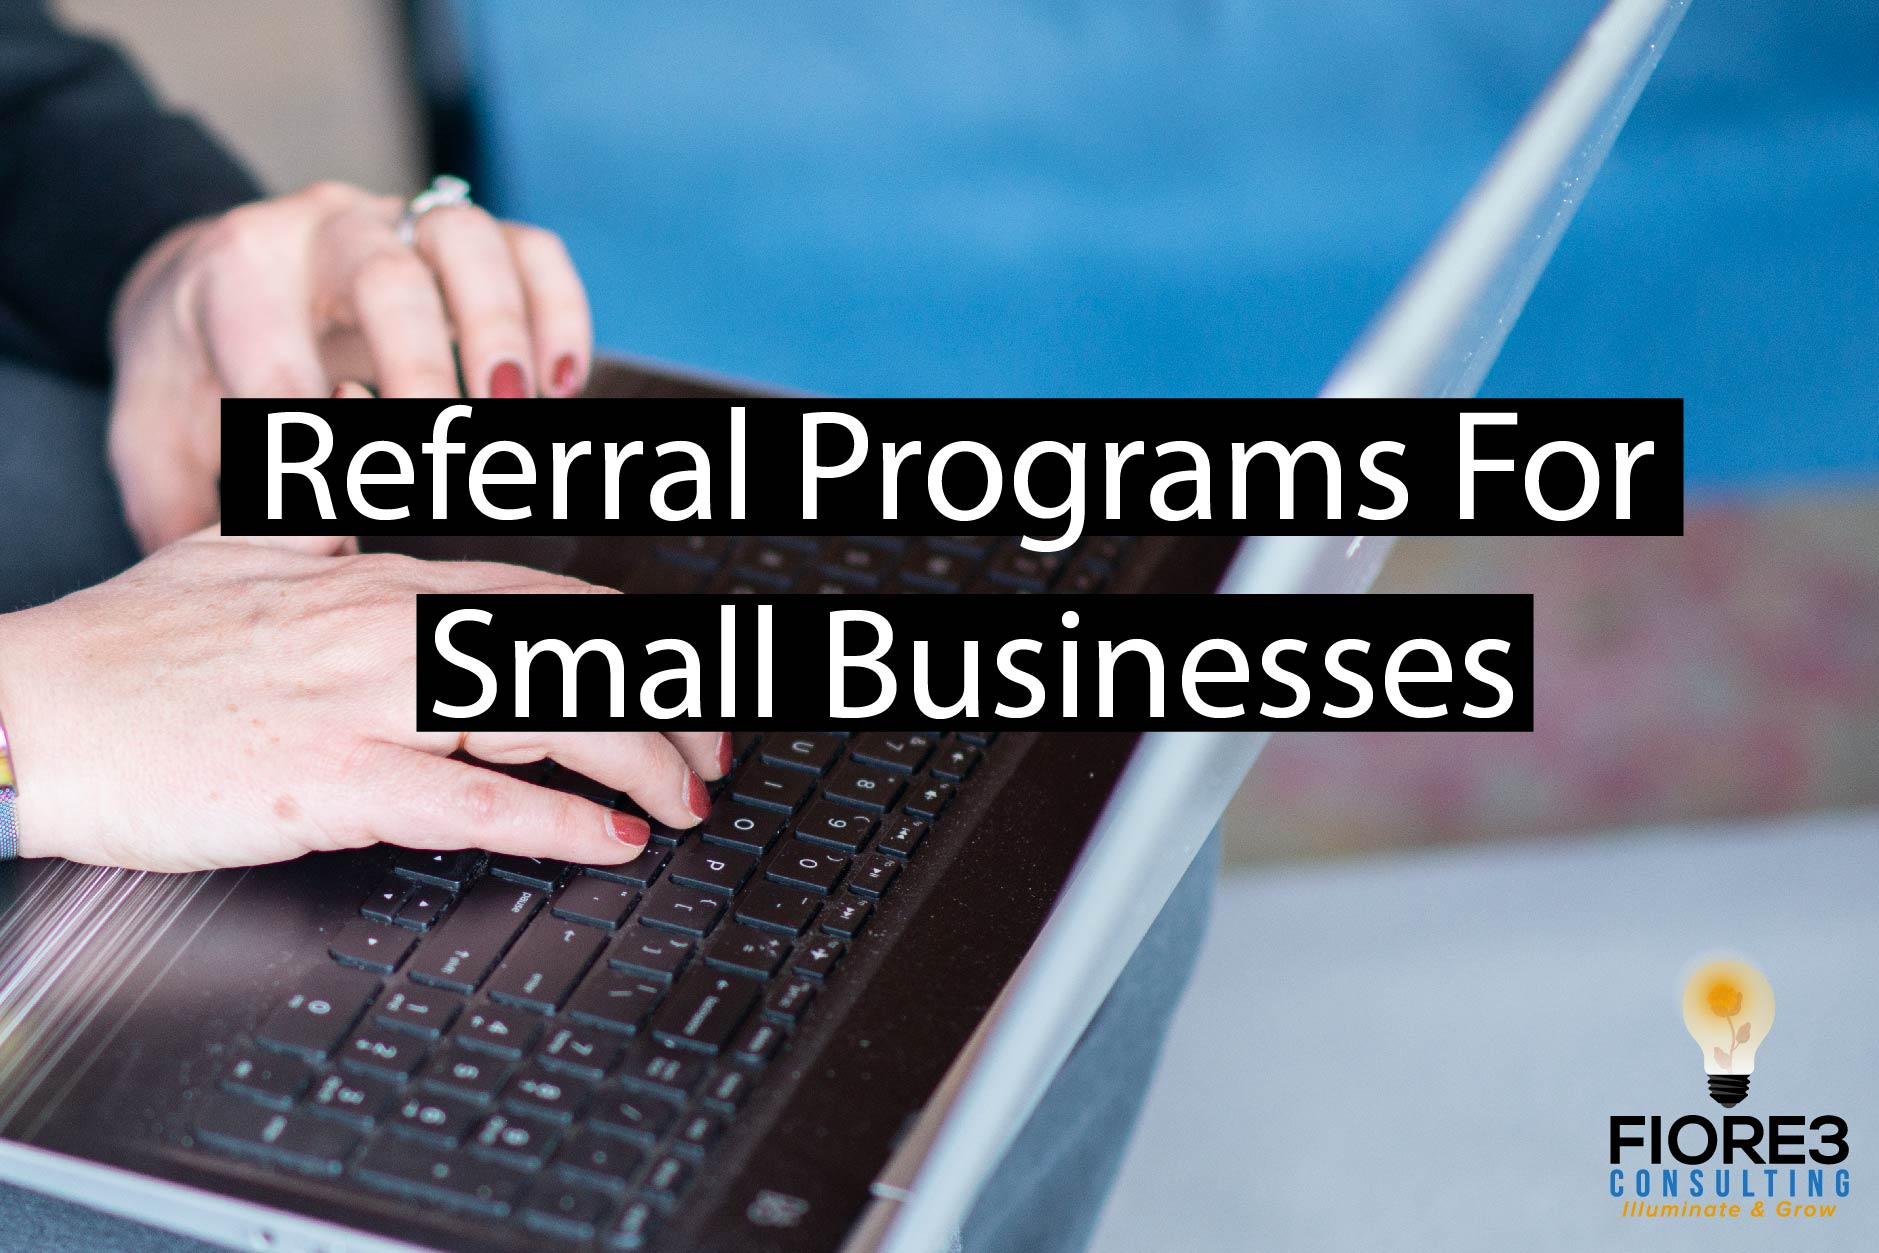 Referral Programs For Small Businesses